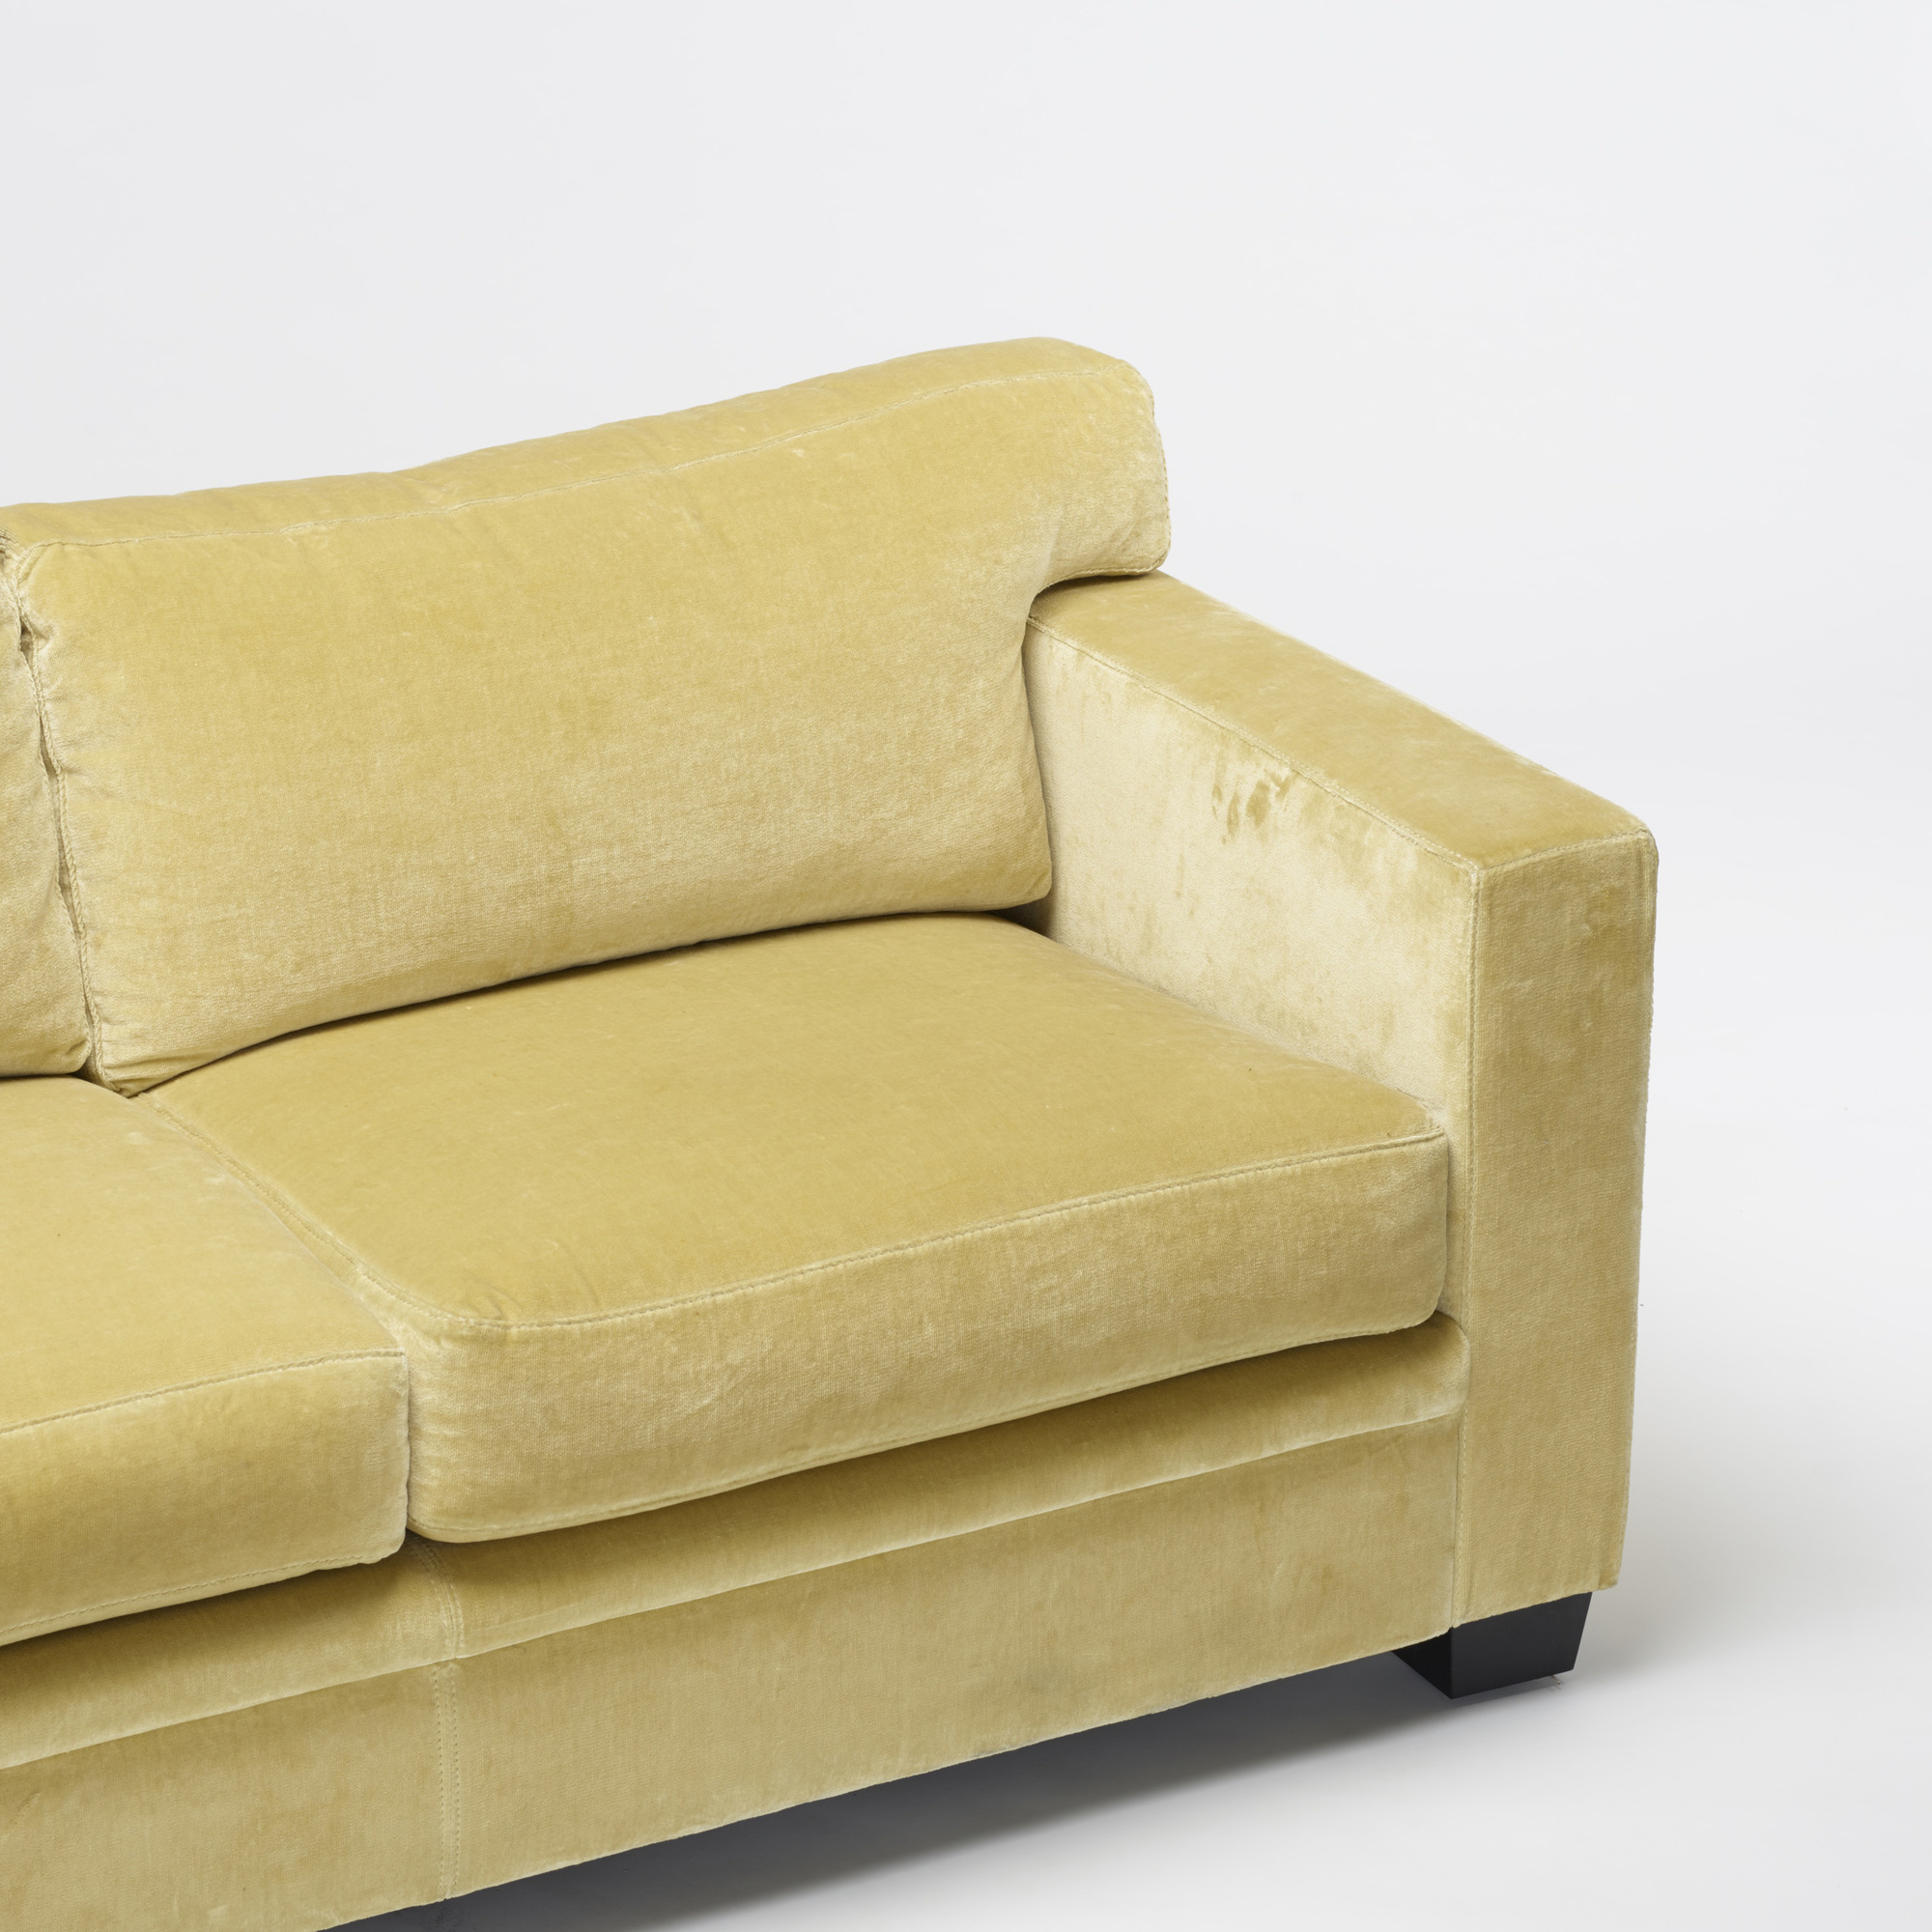 275 In The Manner Of Jean Michel Frank Sofa 3